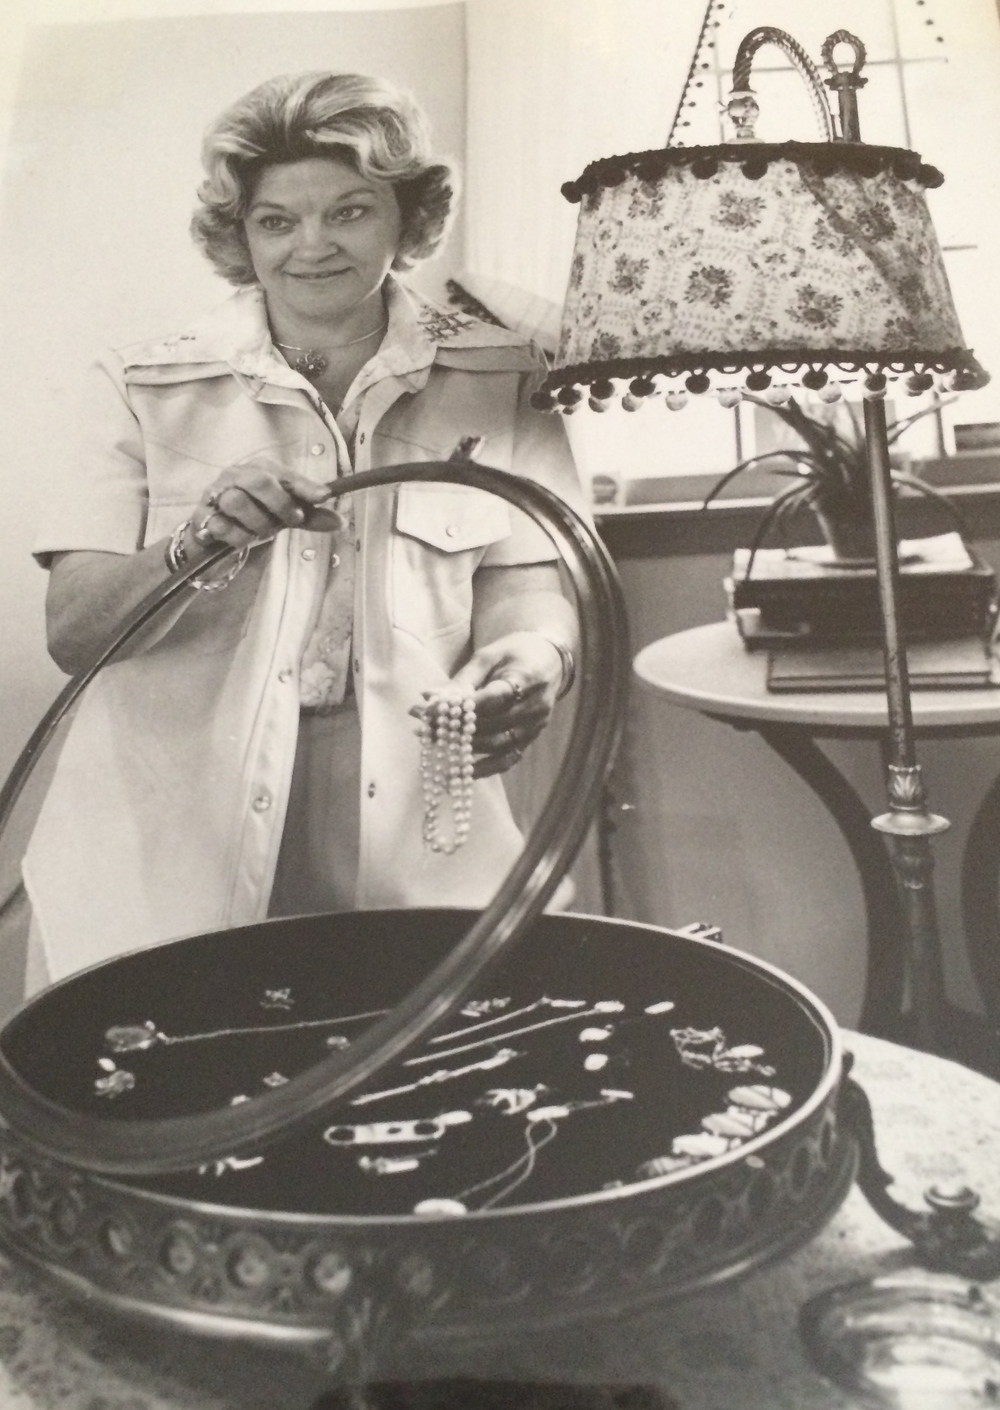 Melba Walton in the beginning of her jewelry career in Carter's Court, Franklin, TN.